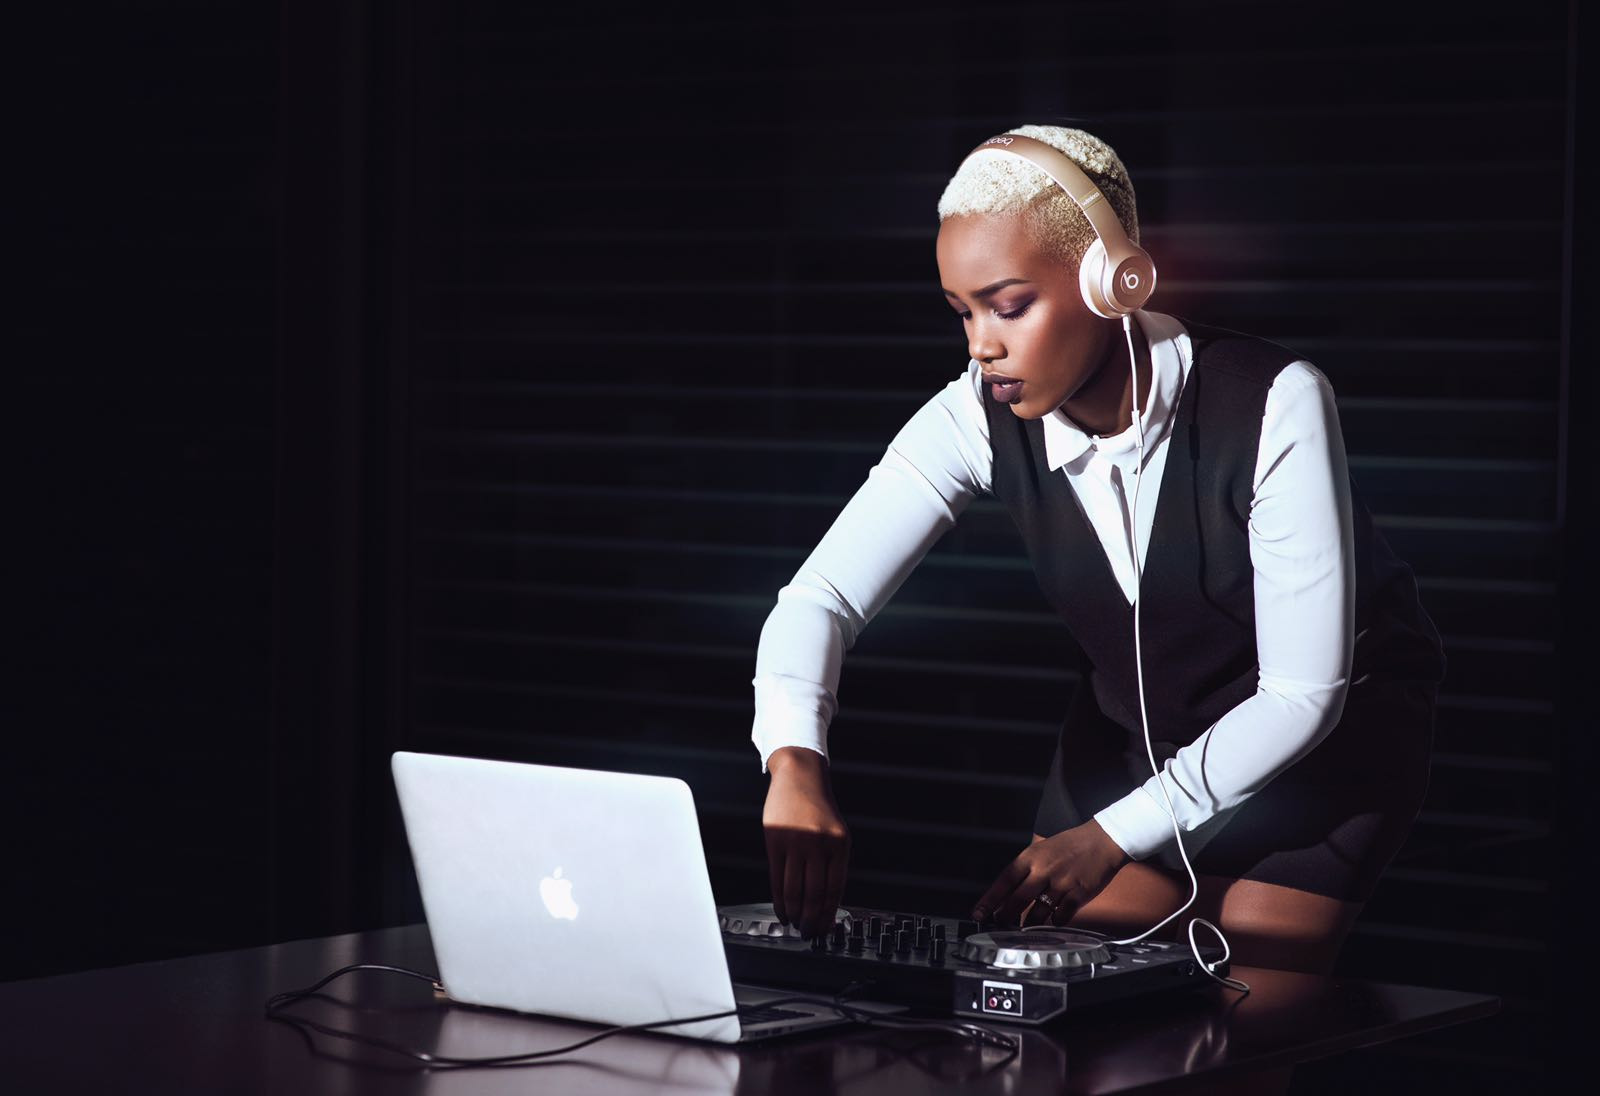 19 years old, cool woman and DJ, meet Landryne Uwimana a.k.a DJ Lala